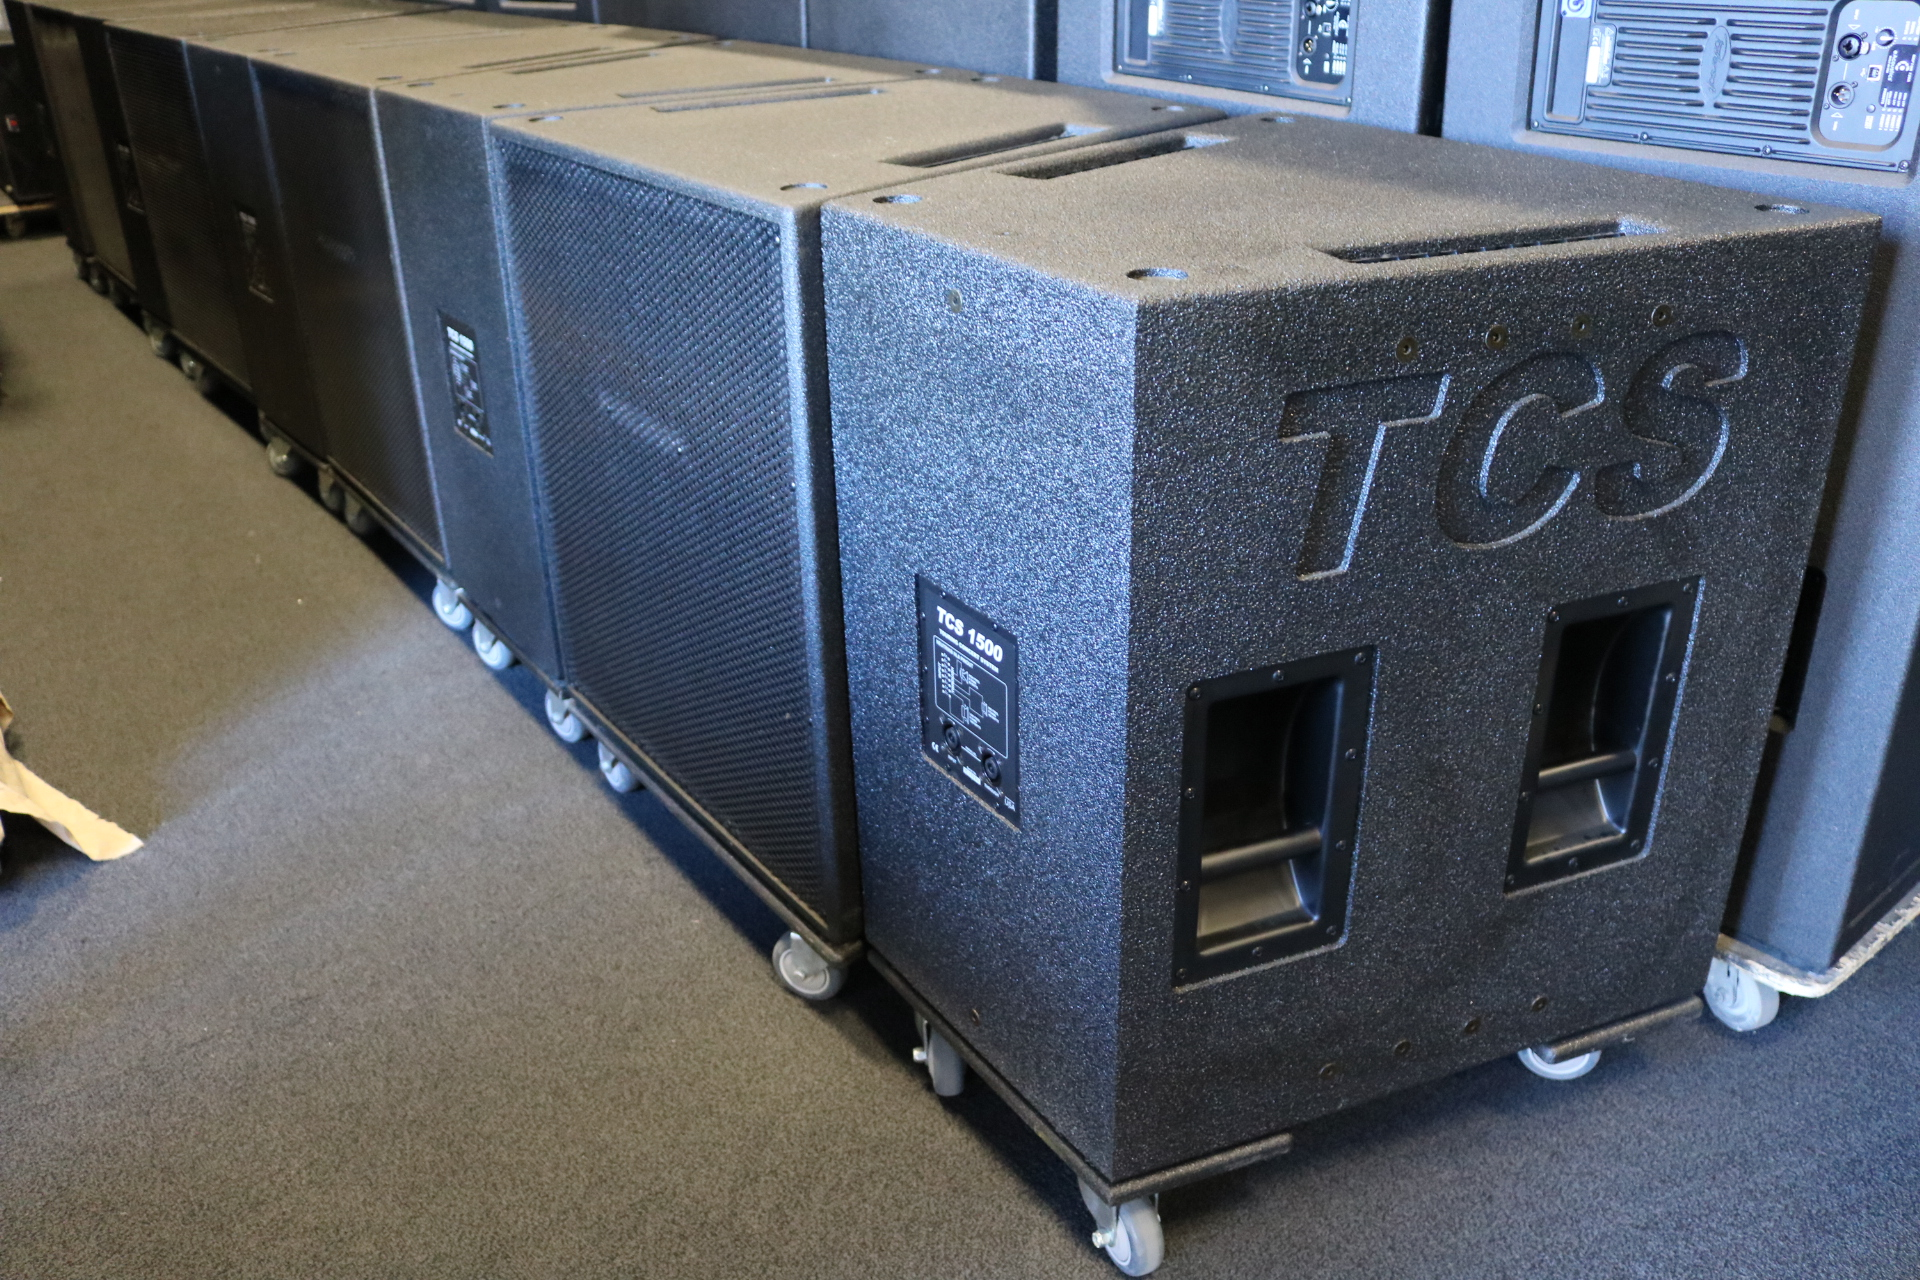 PRO AUDIO SPEAKER MANUFACTURER, 2018 LAGUNA ROUTERS, SCHELLING PANEL SAW, TOYOTA & HYSTER FORKLIFTS - Image 21 of 50